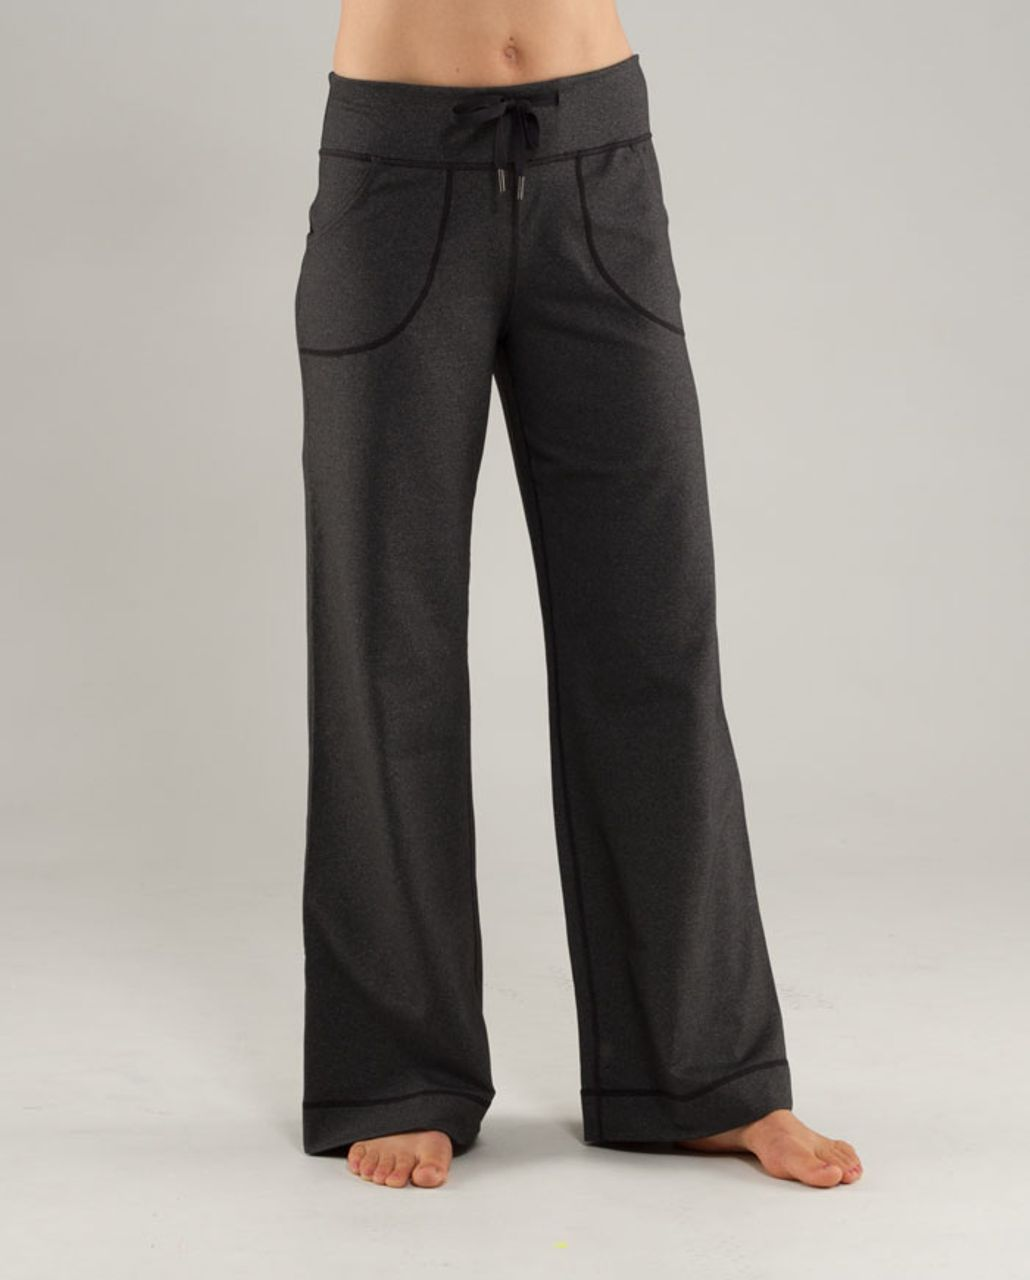 Lululemon Still Pant (Tall) - Heathered Black